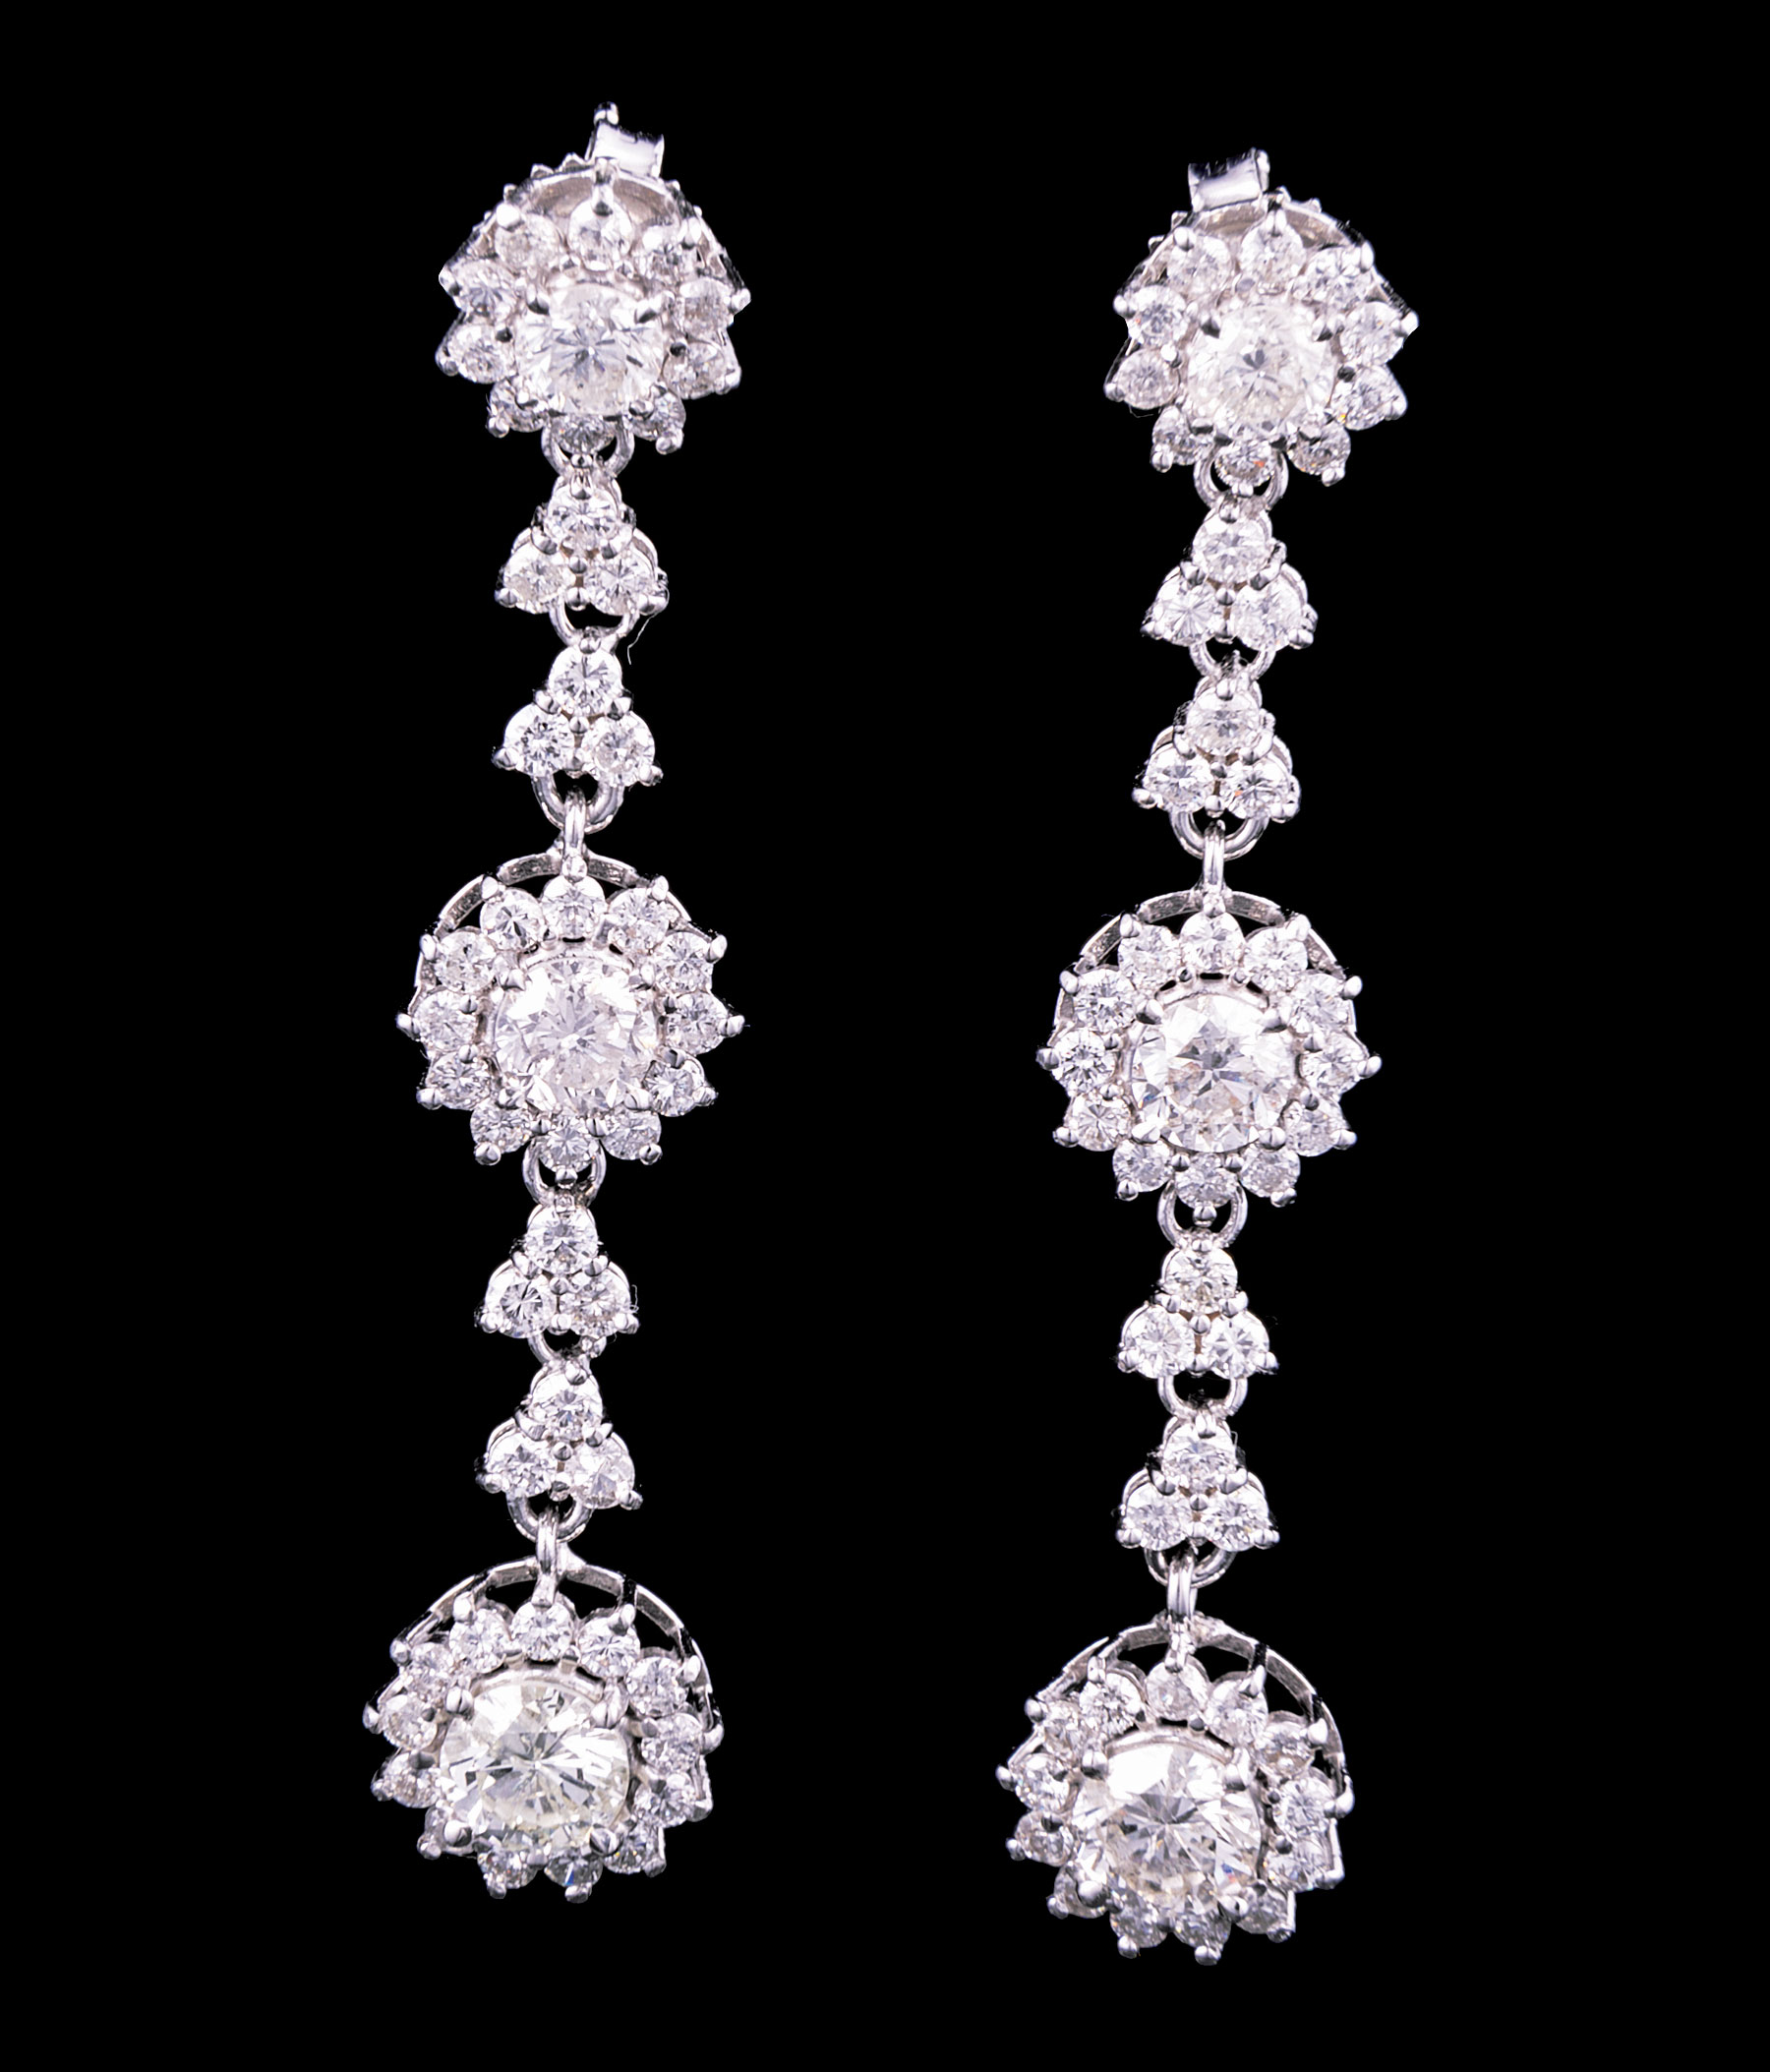 Lot 605 - Pair of 18 kt. White Gold and Diamond Earrings , each set with 3 round diamonds, total wt. 2.79